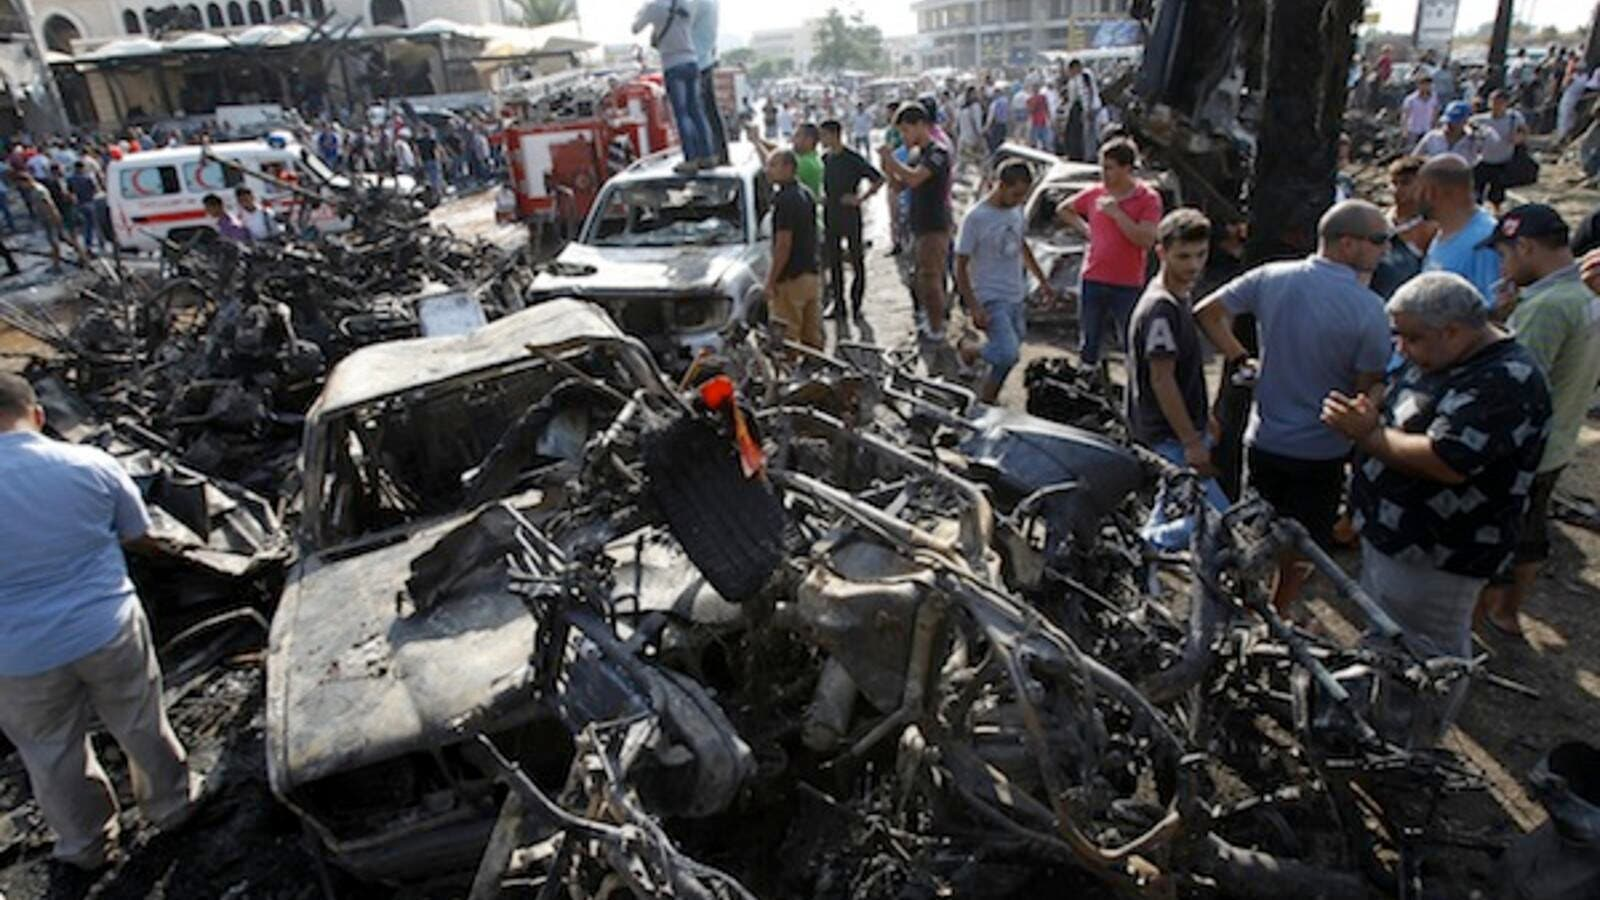 A recent report said that several members of the Arab Democratic Party were behind the twin bombings in the northern city of Tripoli in August, which killed 45 people and wounded more than 800. (AFP/File)